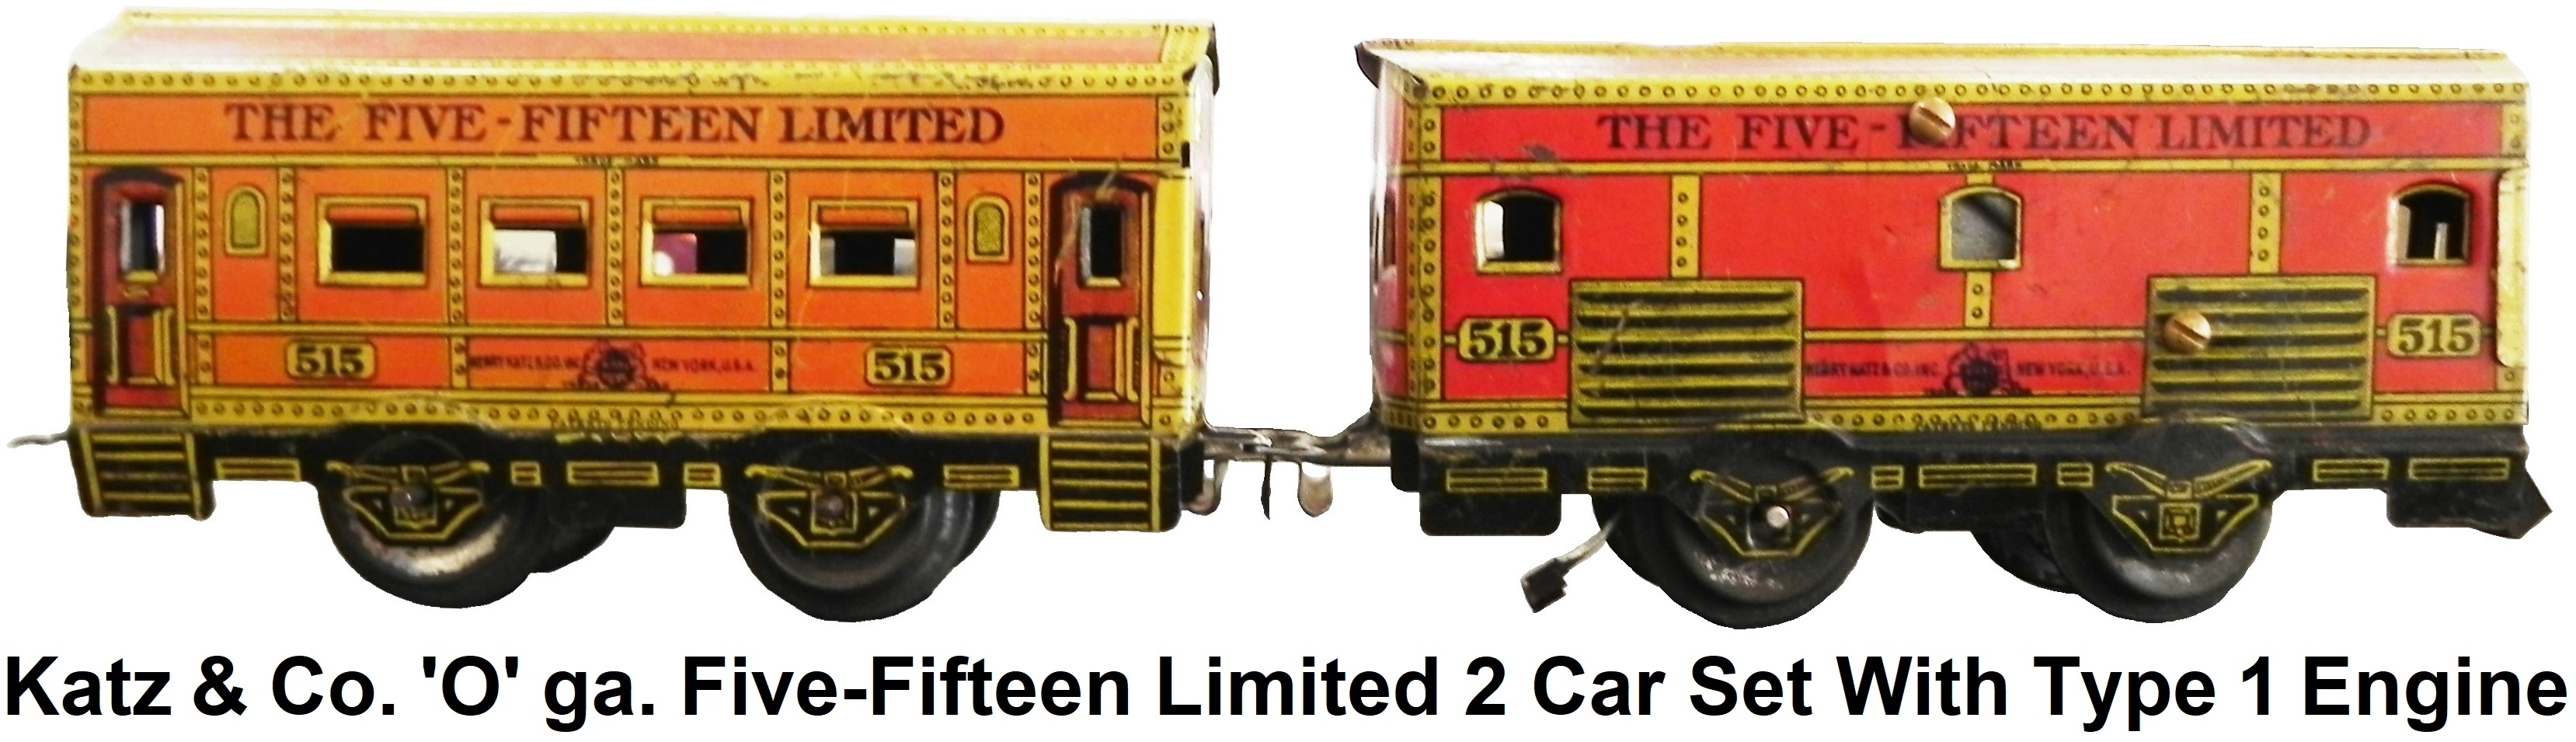 Henry Katz & Co. 'O' gauge Five-Fifteen Limited 2 car set with Type 1 engine circa 1928